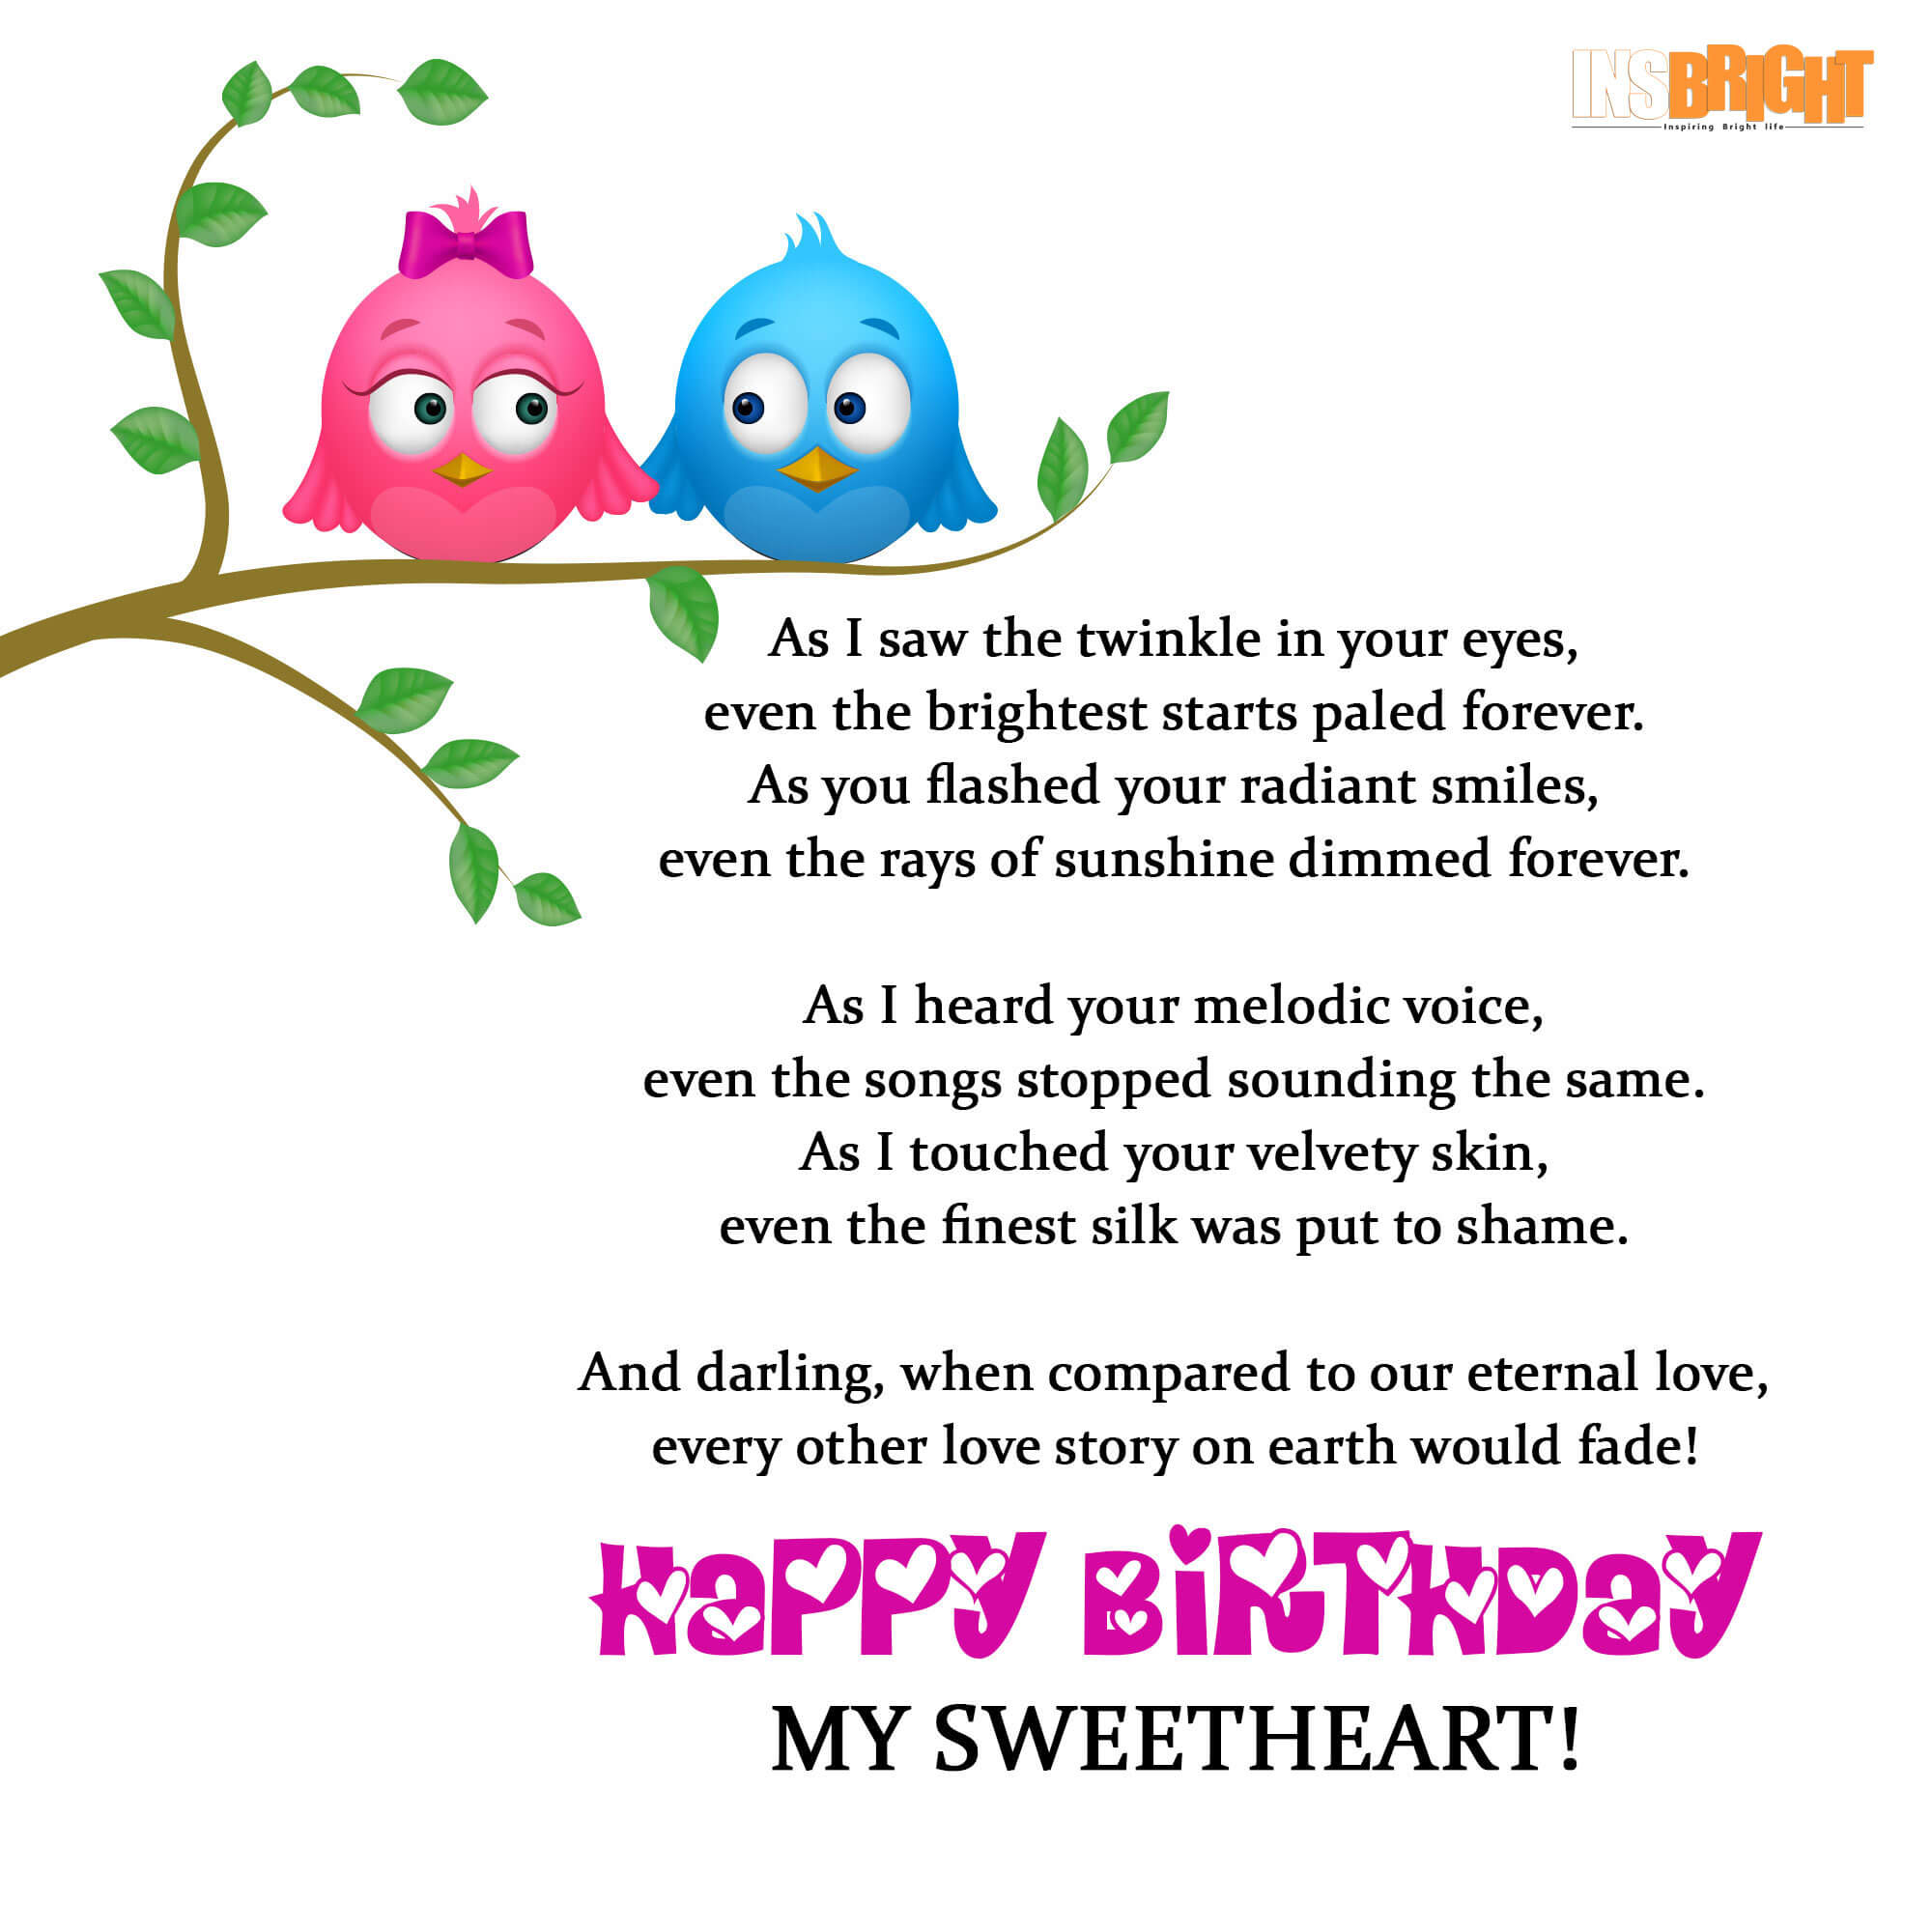 Happy 50th Birthday Poems: 10+ Romantic Happy Birthday Poems For Wife With Love From